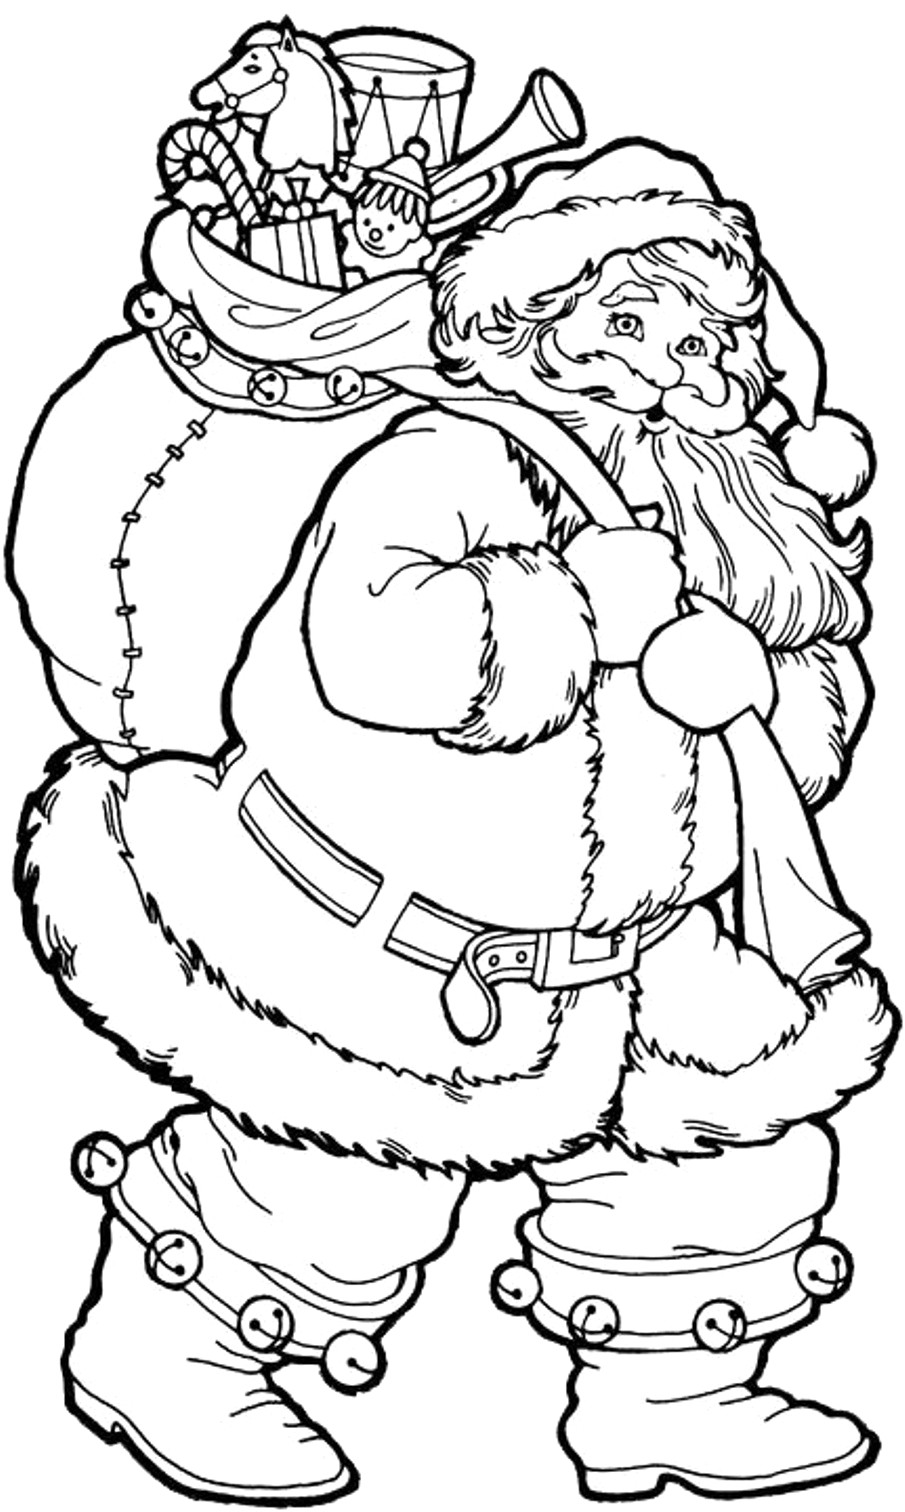 Santa Coloring Kindergarten With Photos Christmas Tree And Pages Download 17 G